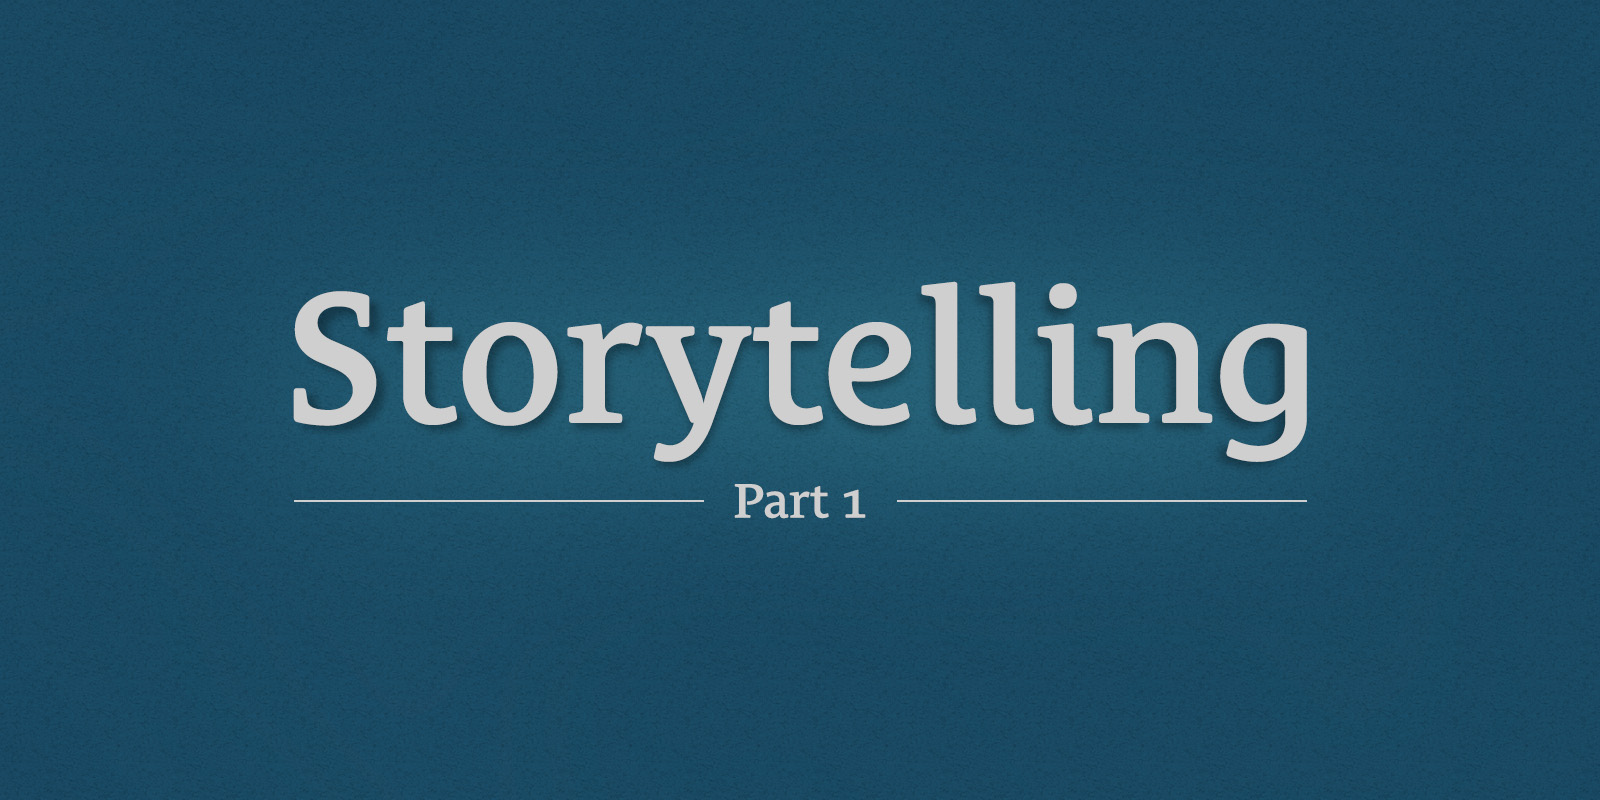 Storytelling, Part 1 - Your Brand Story